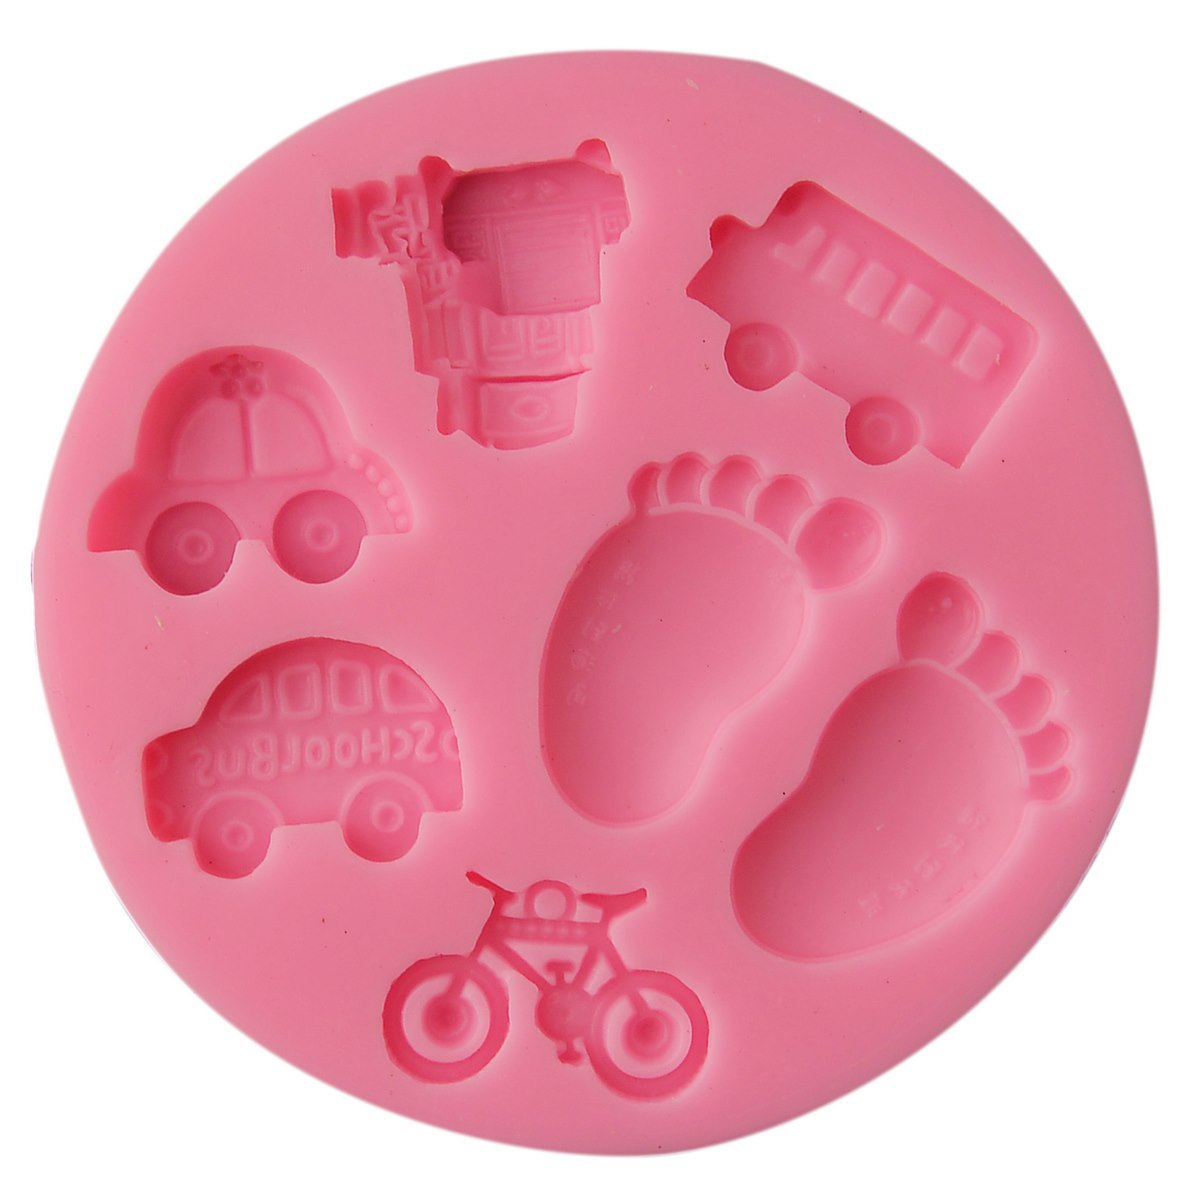 Resin Silicone Mould - Baby Toys (10x10x1 cm)